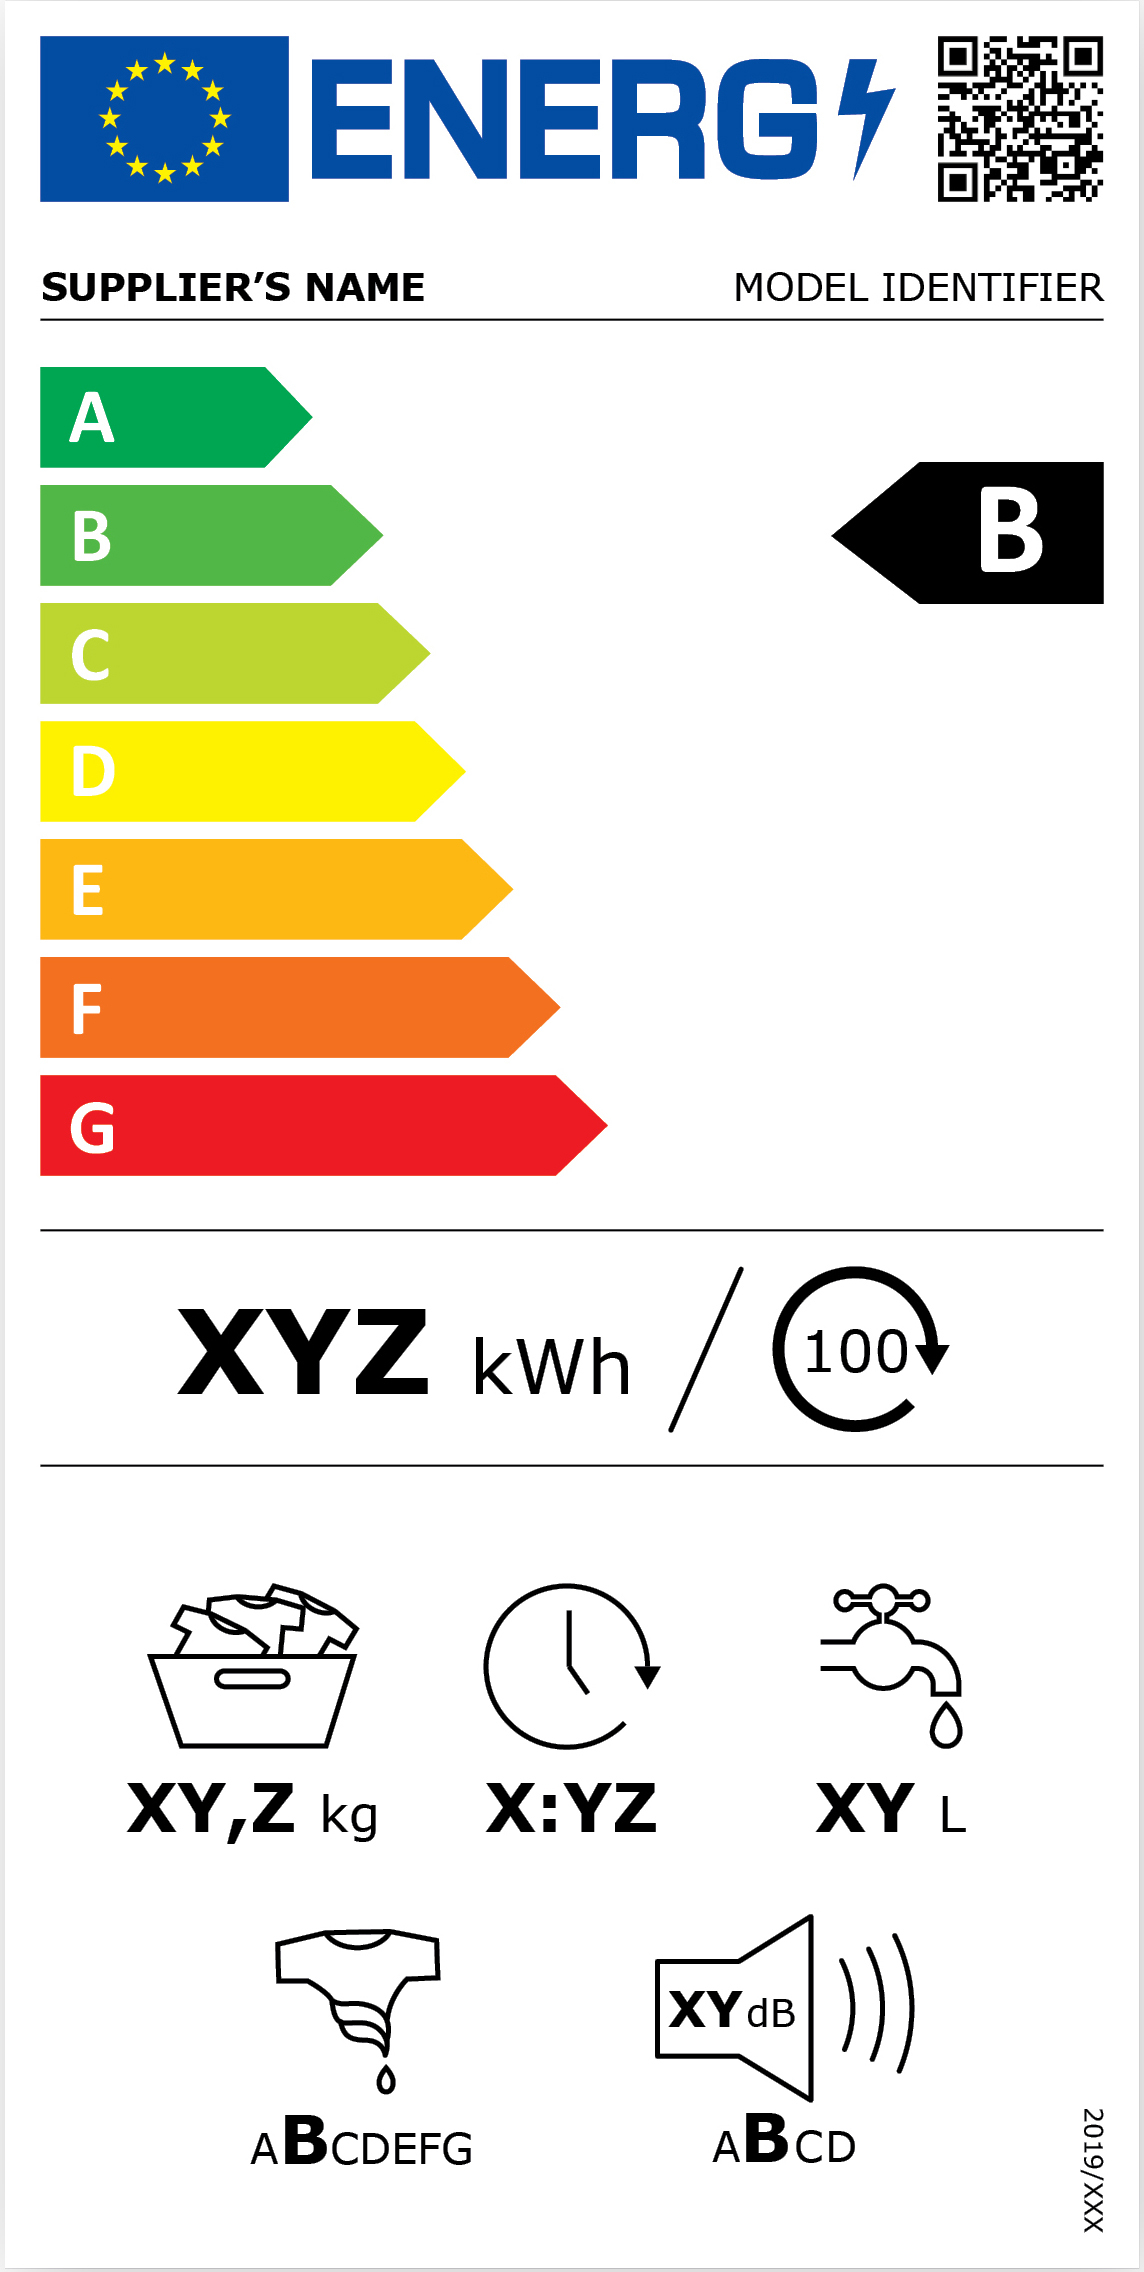 European Union Product Database and Rescaled Labels